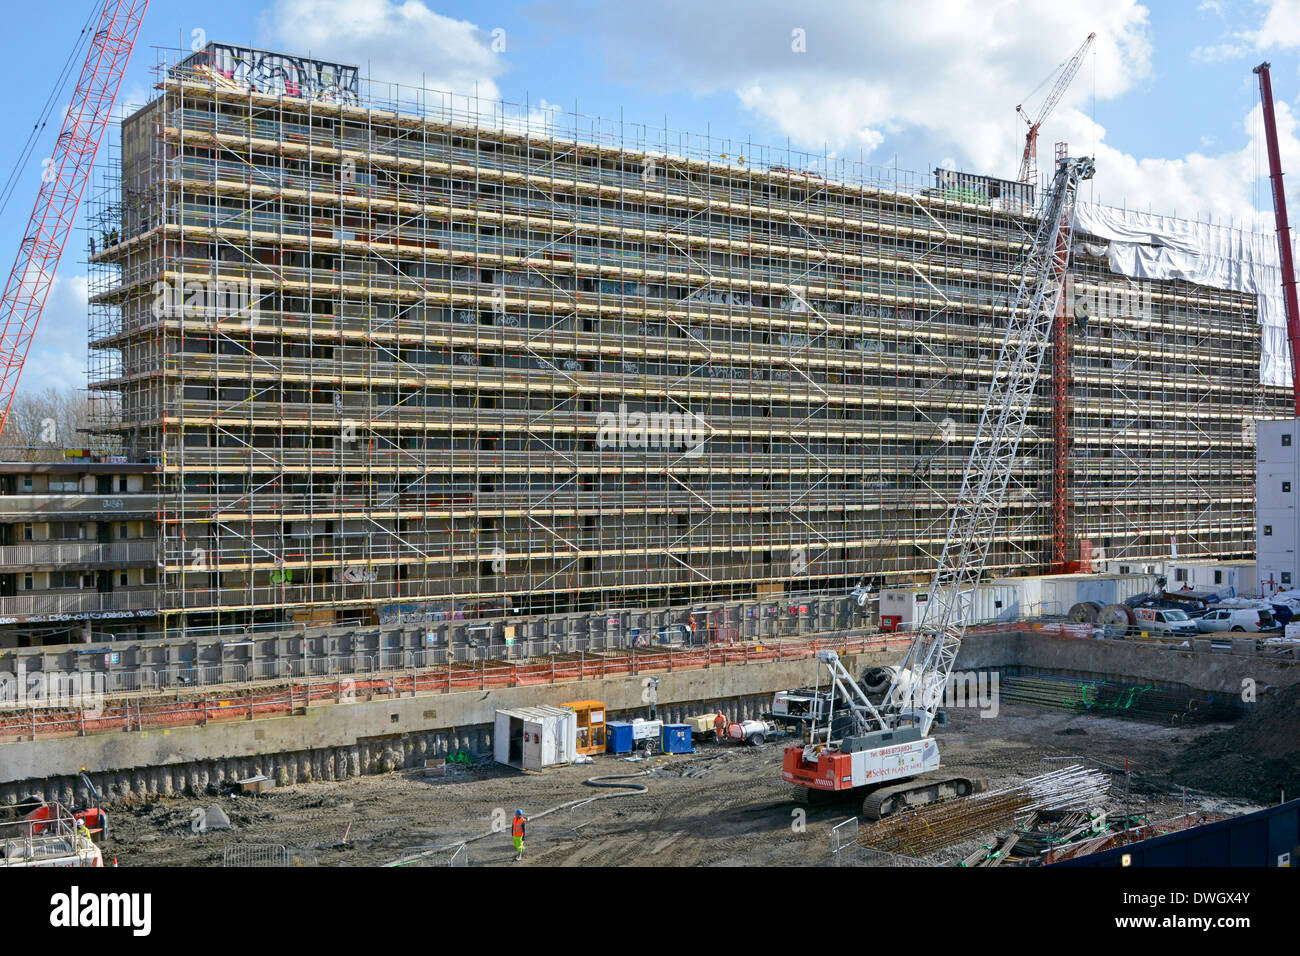 Scaffold around Heygate Estate social housing block preparing for demolition foundation work on previously cleared area Southwark South London England - Stock Image